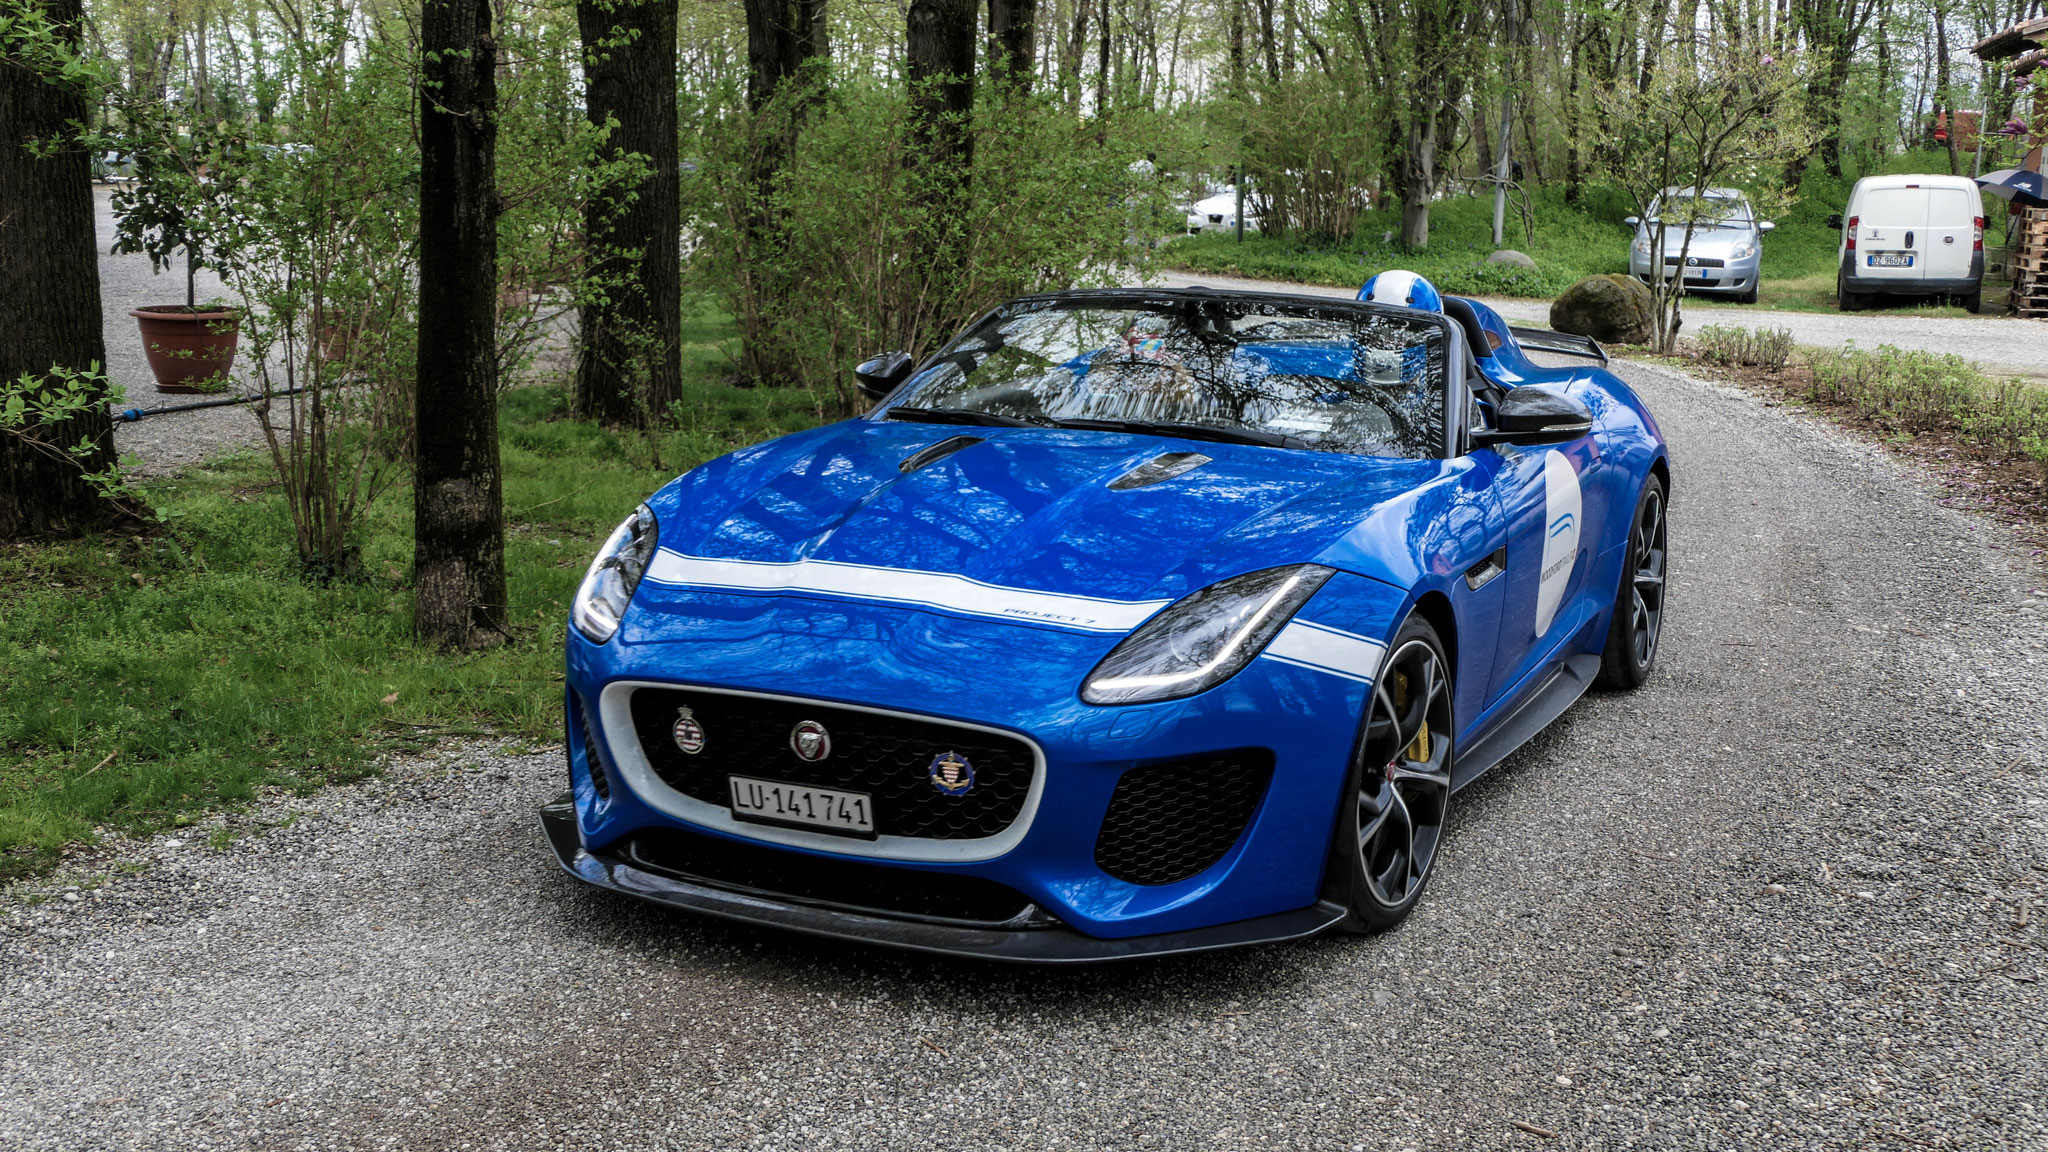 Jaguar F-Type Project 7 - LU-141741 (CH)